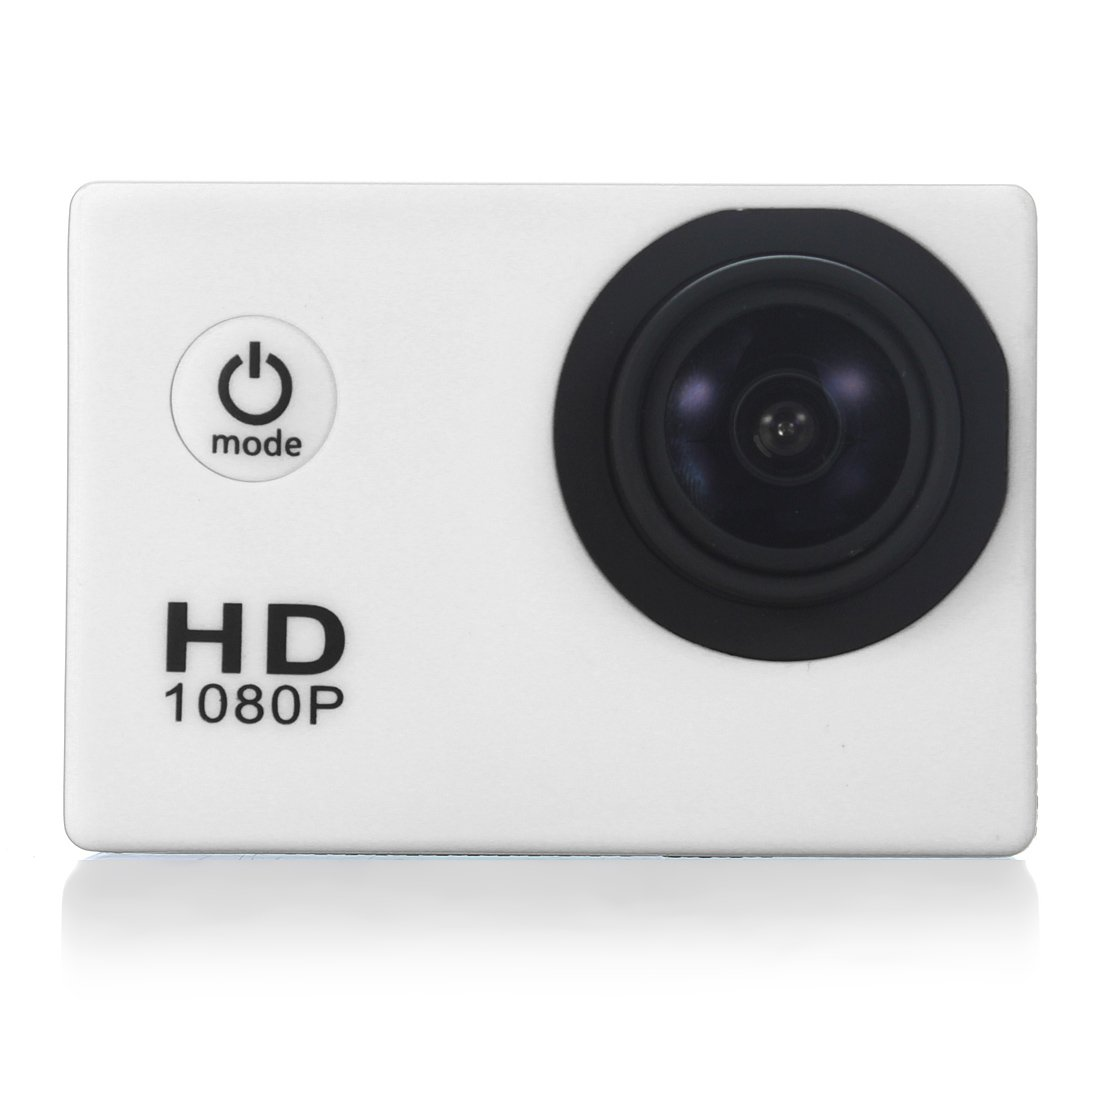 MOOL For SJ4000 Full HD 1080P Mini Sport camera action dv with waterproof shell 30M Extreme - white kahane sj4000 full hd 1080p wifi wireless 30m waterproof sport dv video action camera for audi bmw mercedes vw nissan hyundai